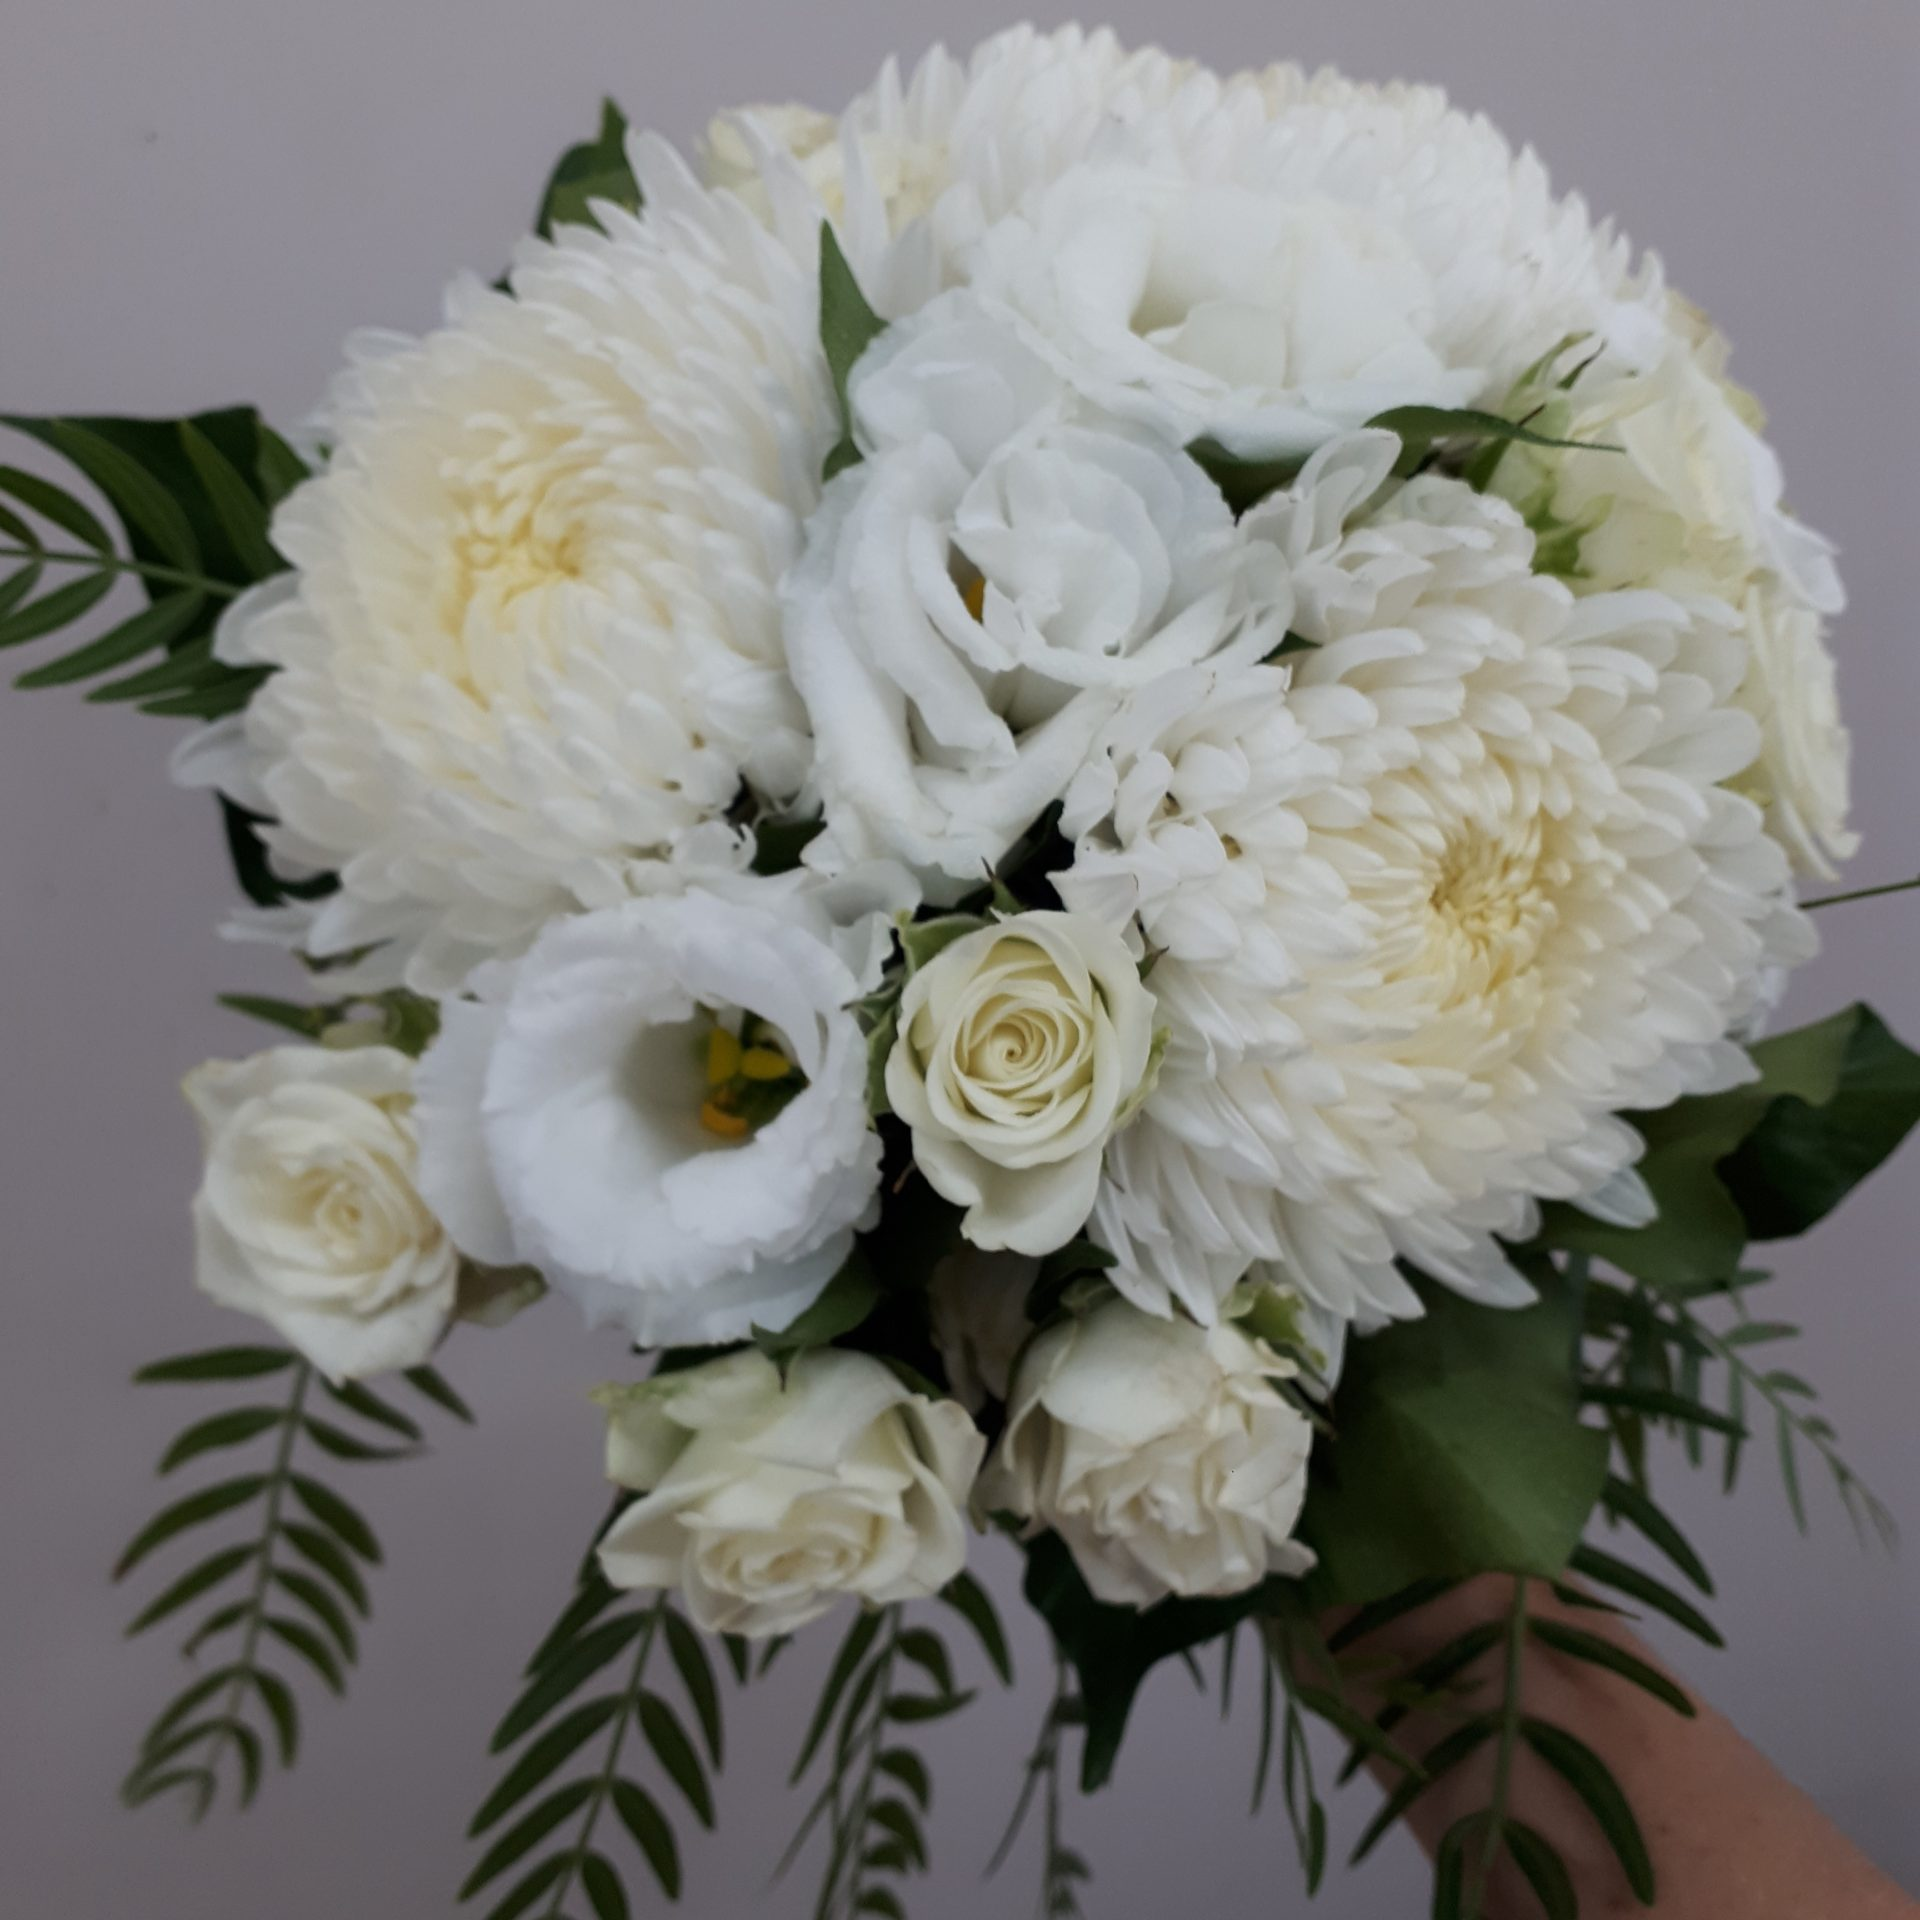 Bridesmaid's cascading posy with cream disbuds, lisianthus and roses